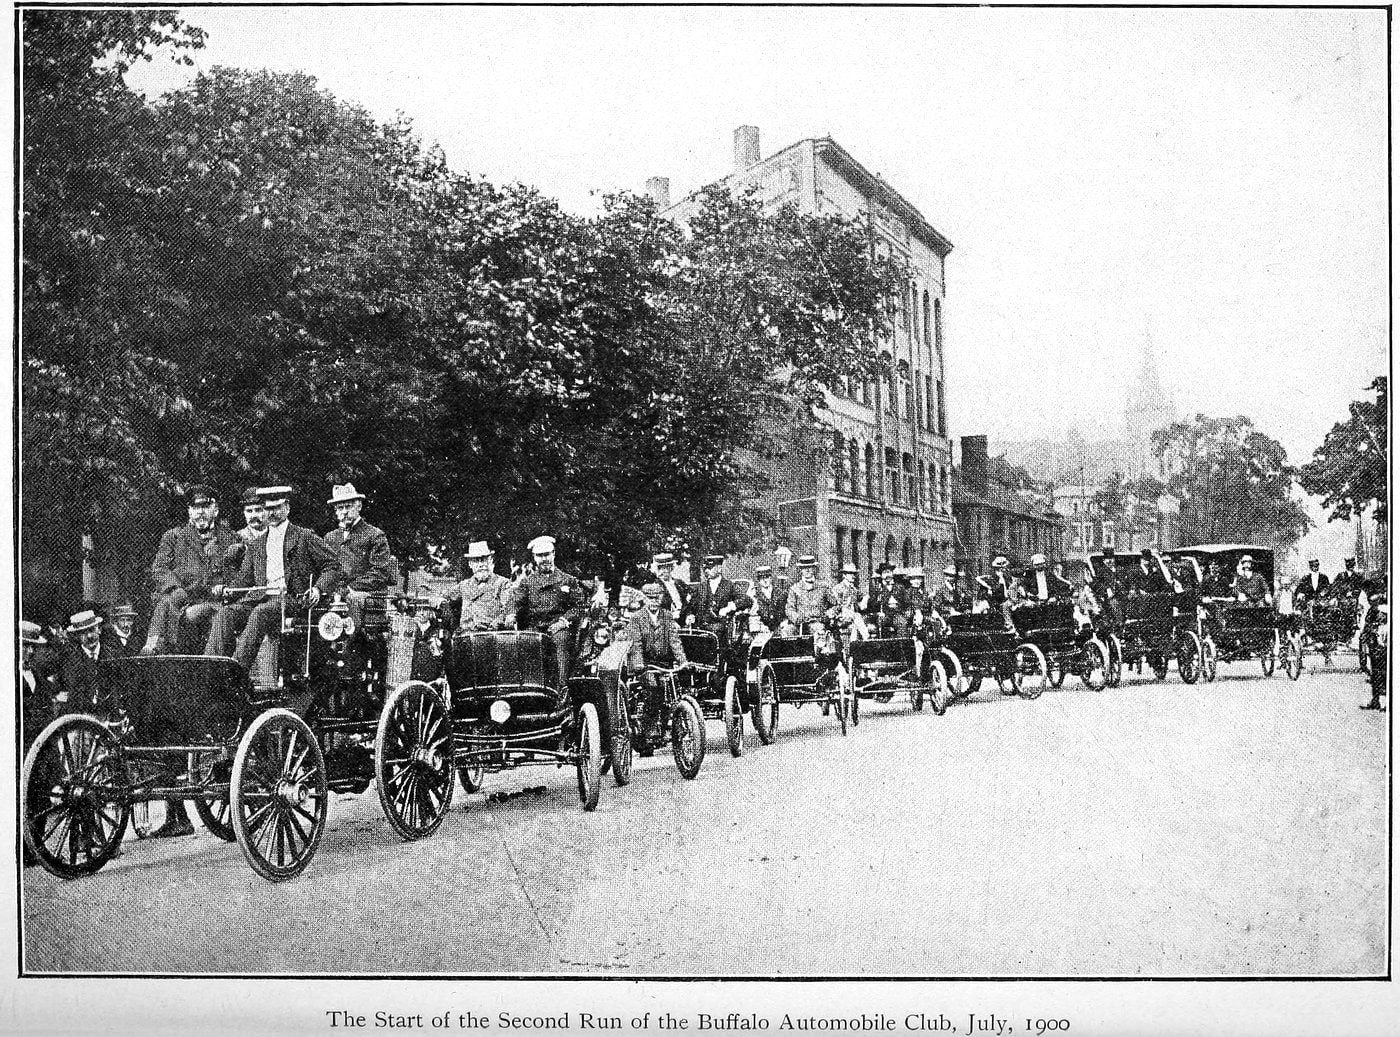 The start of the second run of the Buffalo Automobile Club (July, 1900)